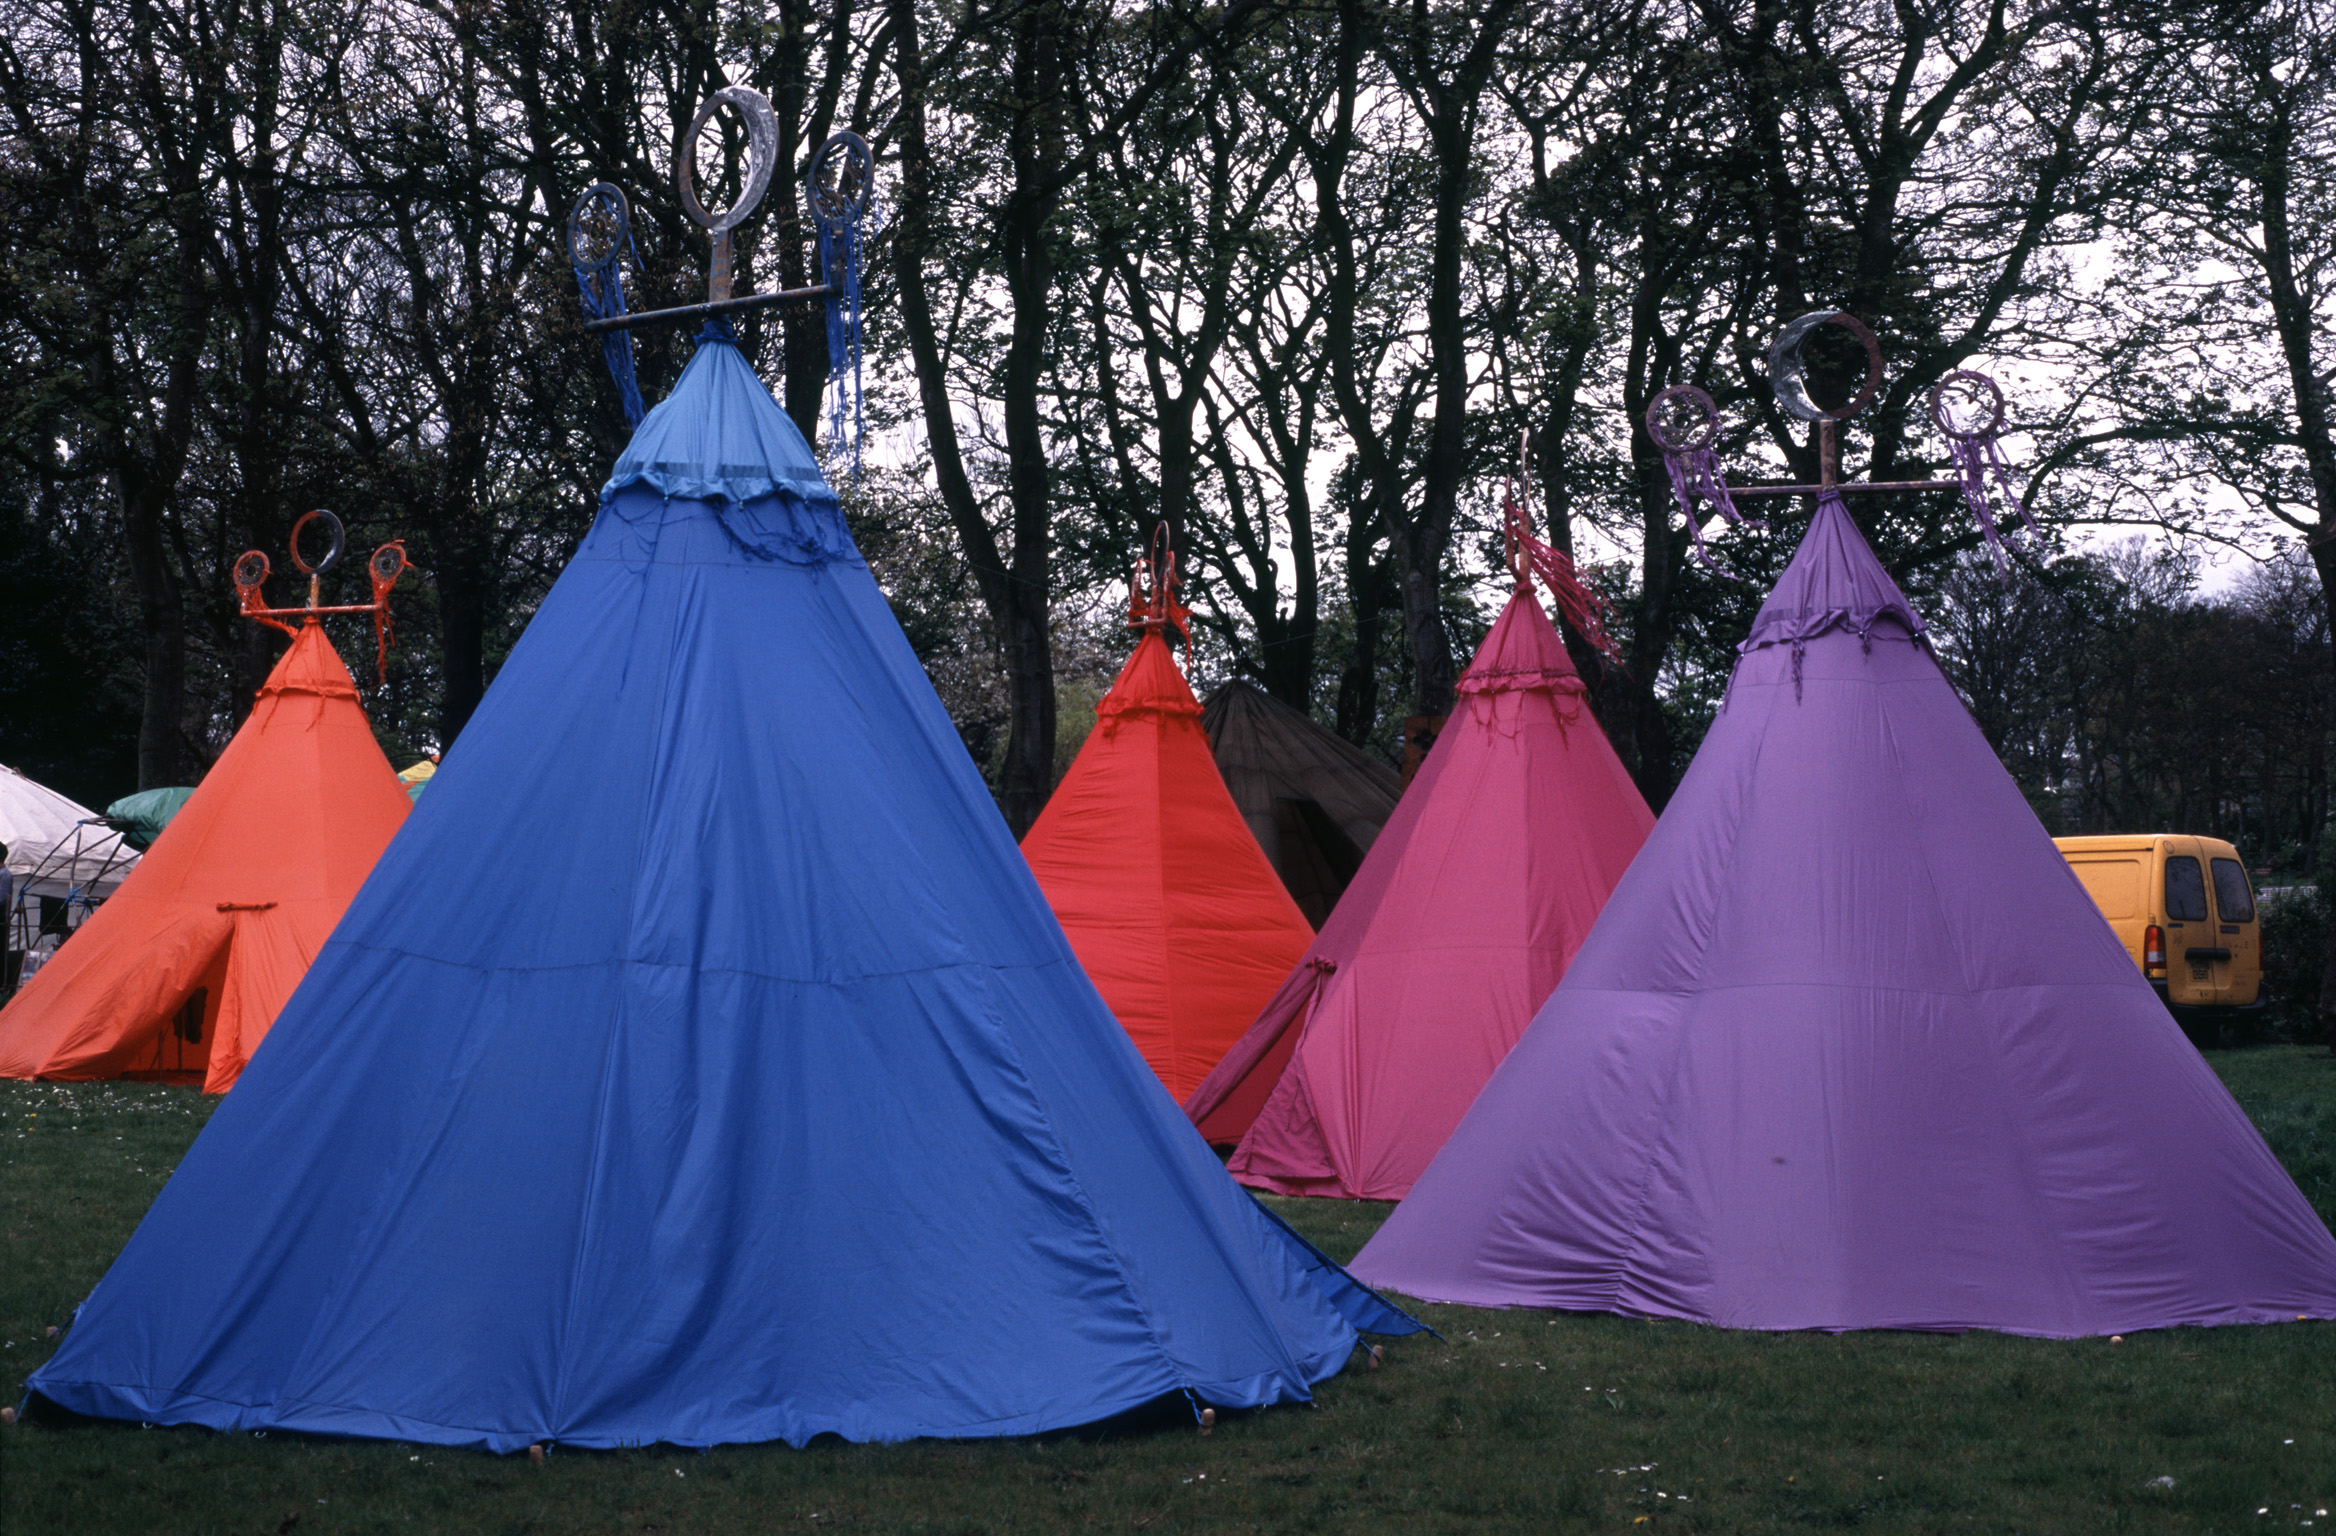 Group of colorful blue, orange and pink tents pitched on a wooded campsite conceptual of a vacation, travel and healthy lifestyle